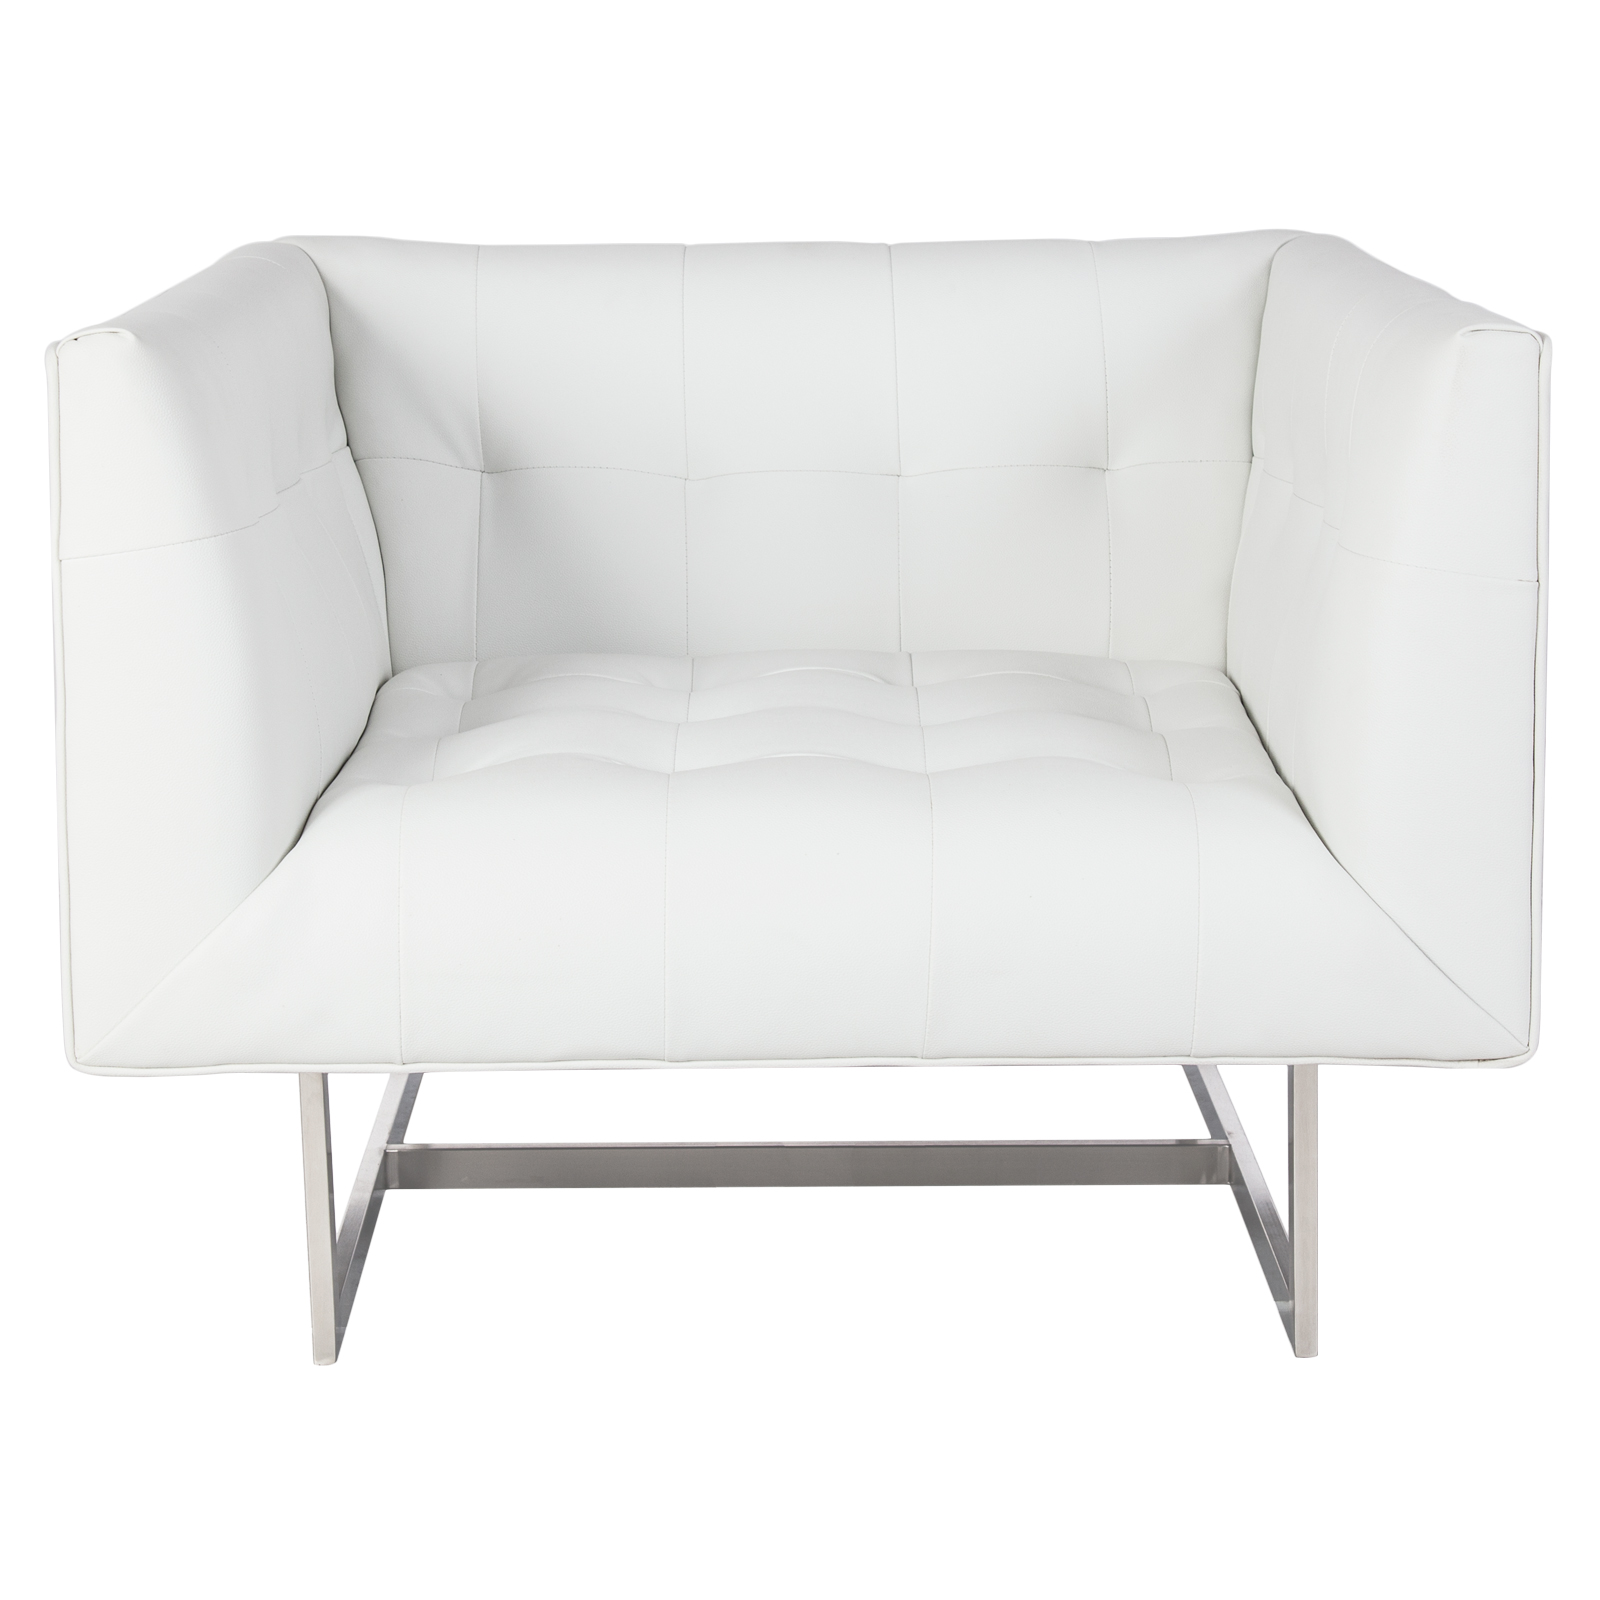 Incredible Edward Lounge Chair Rentals Event Furniture Rental Bralicious Painted Fabric Chair Ideas Braliciousco